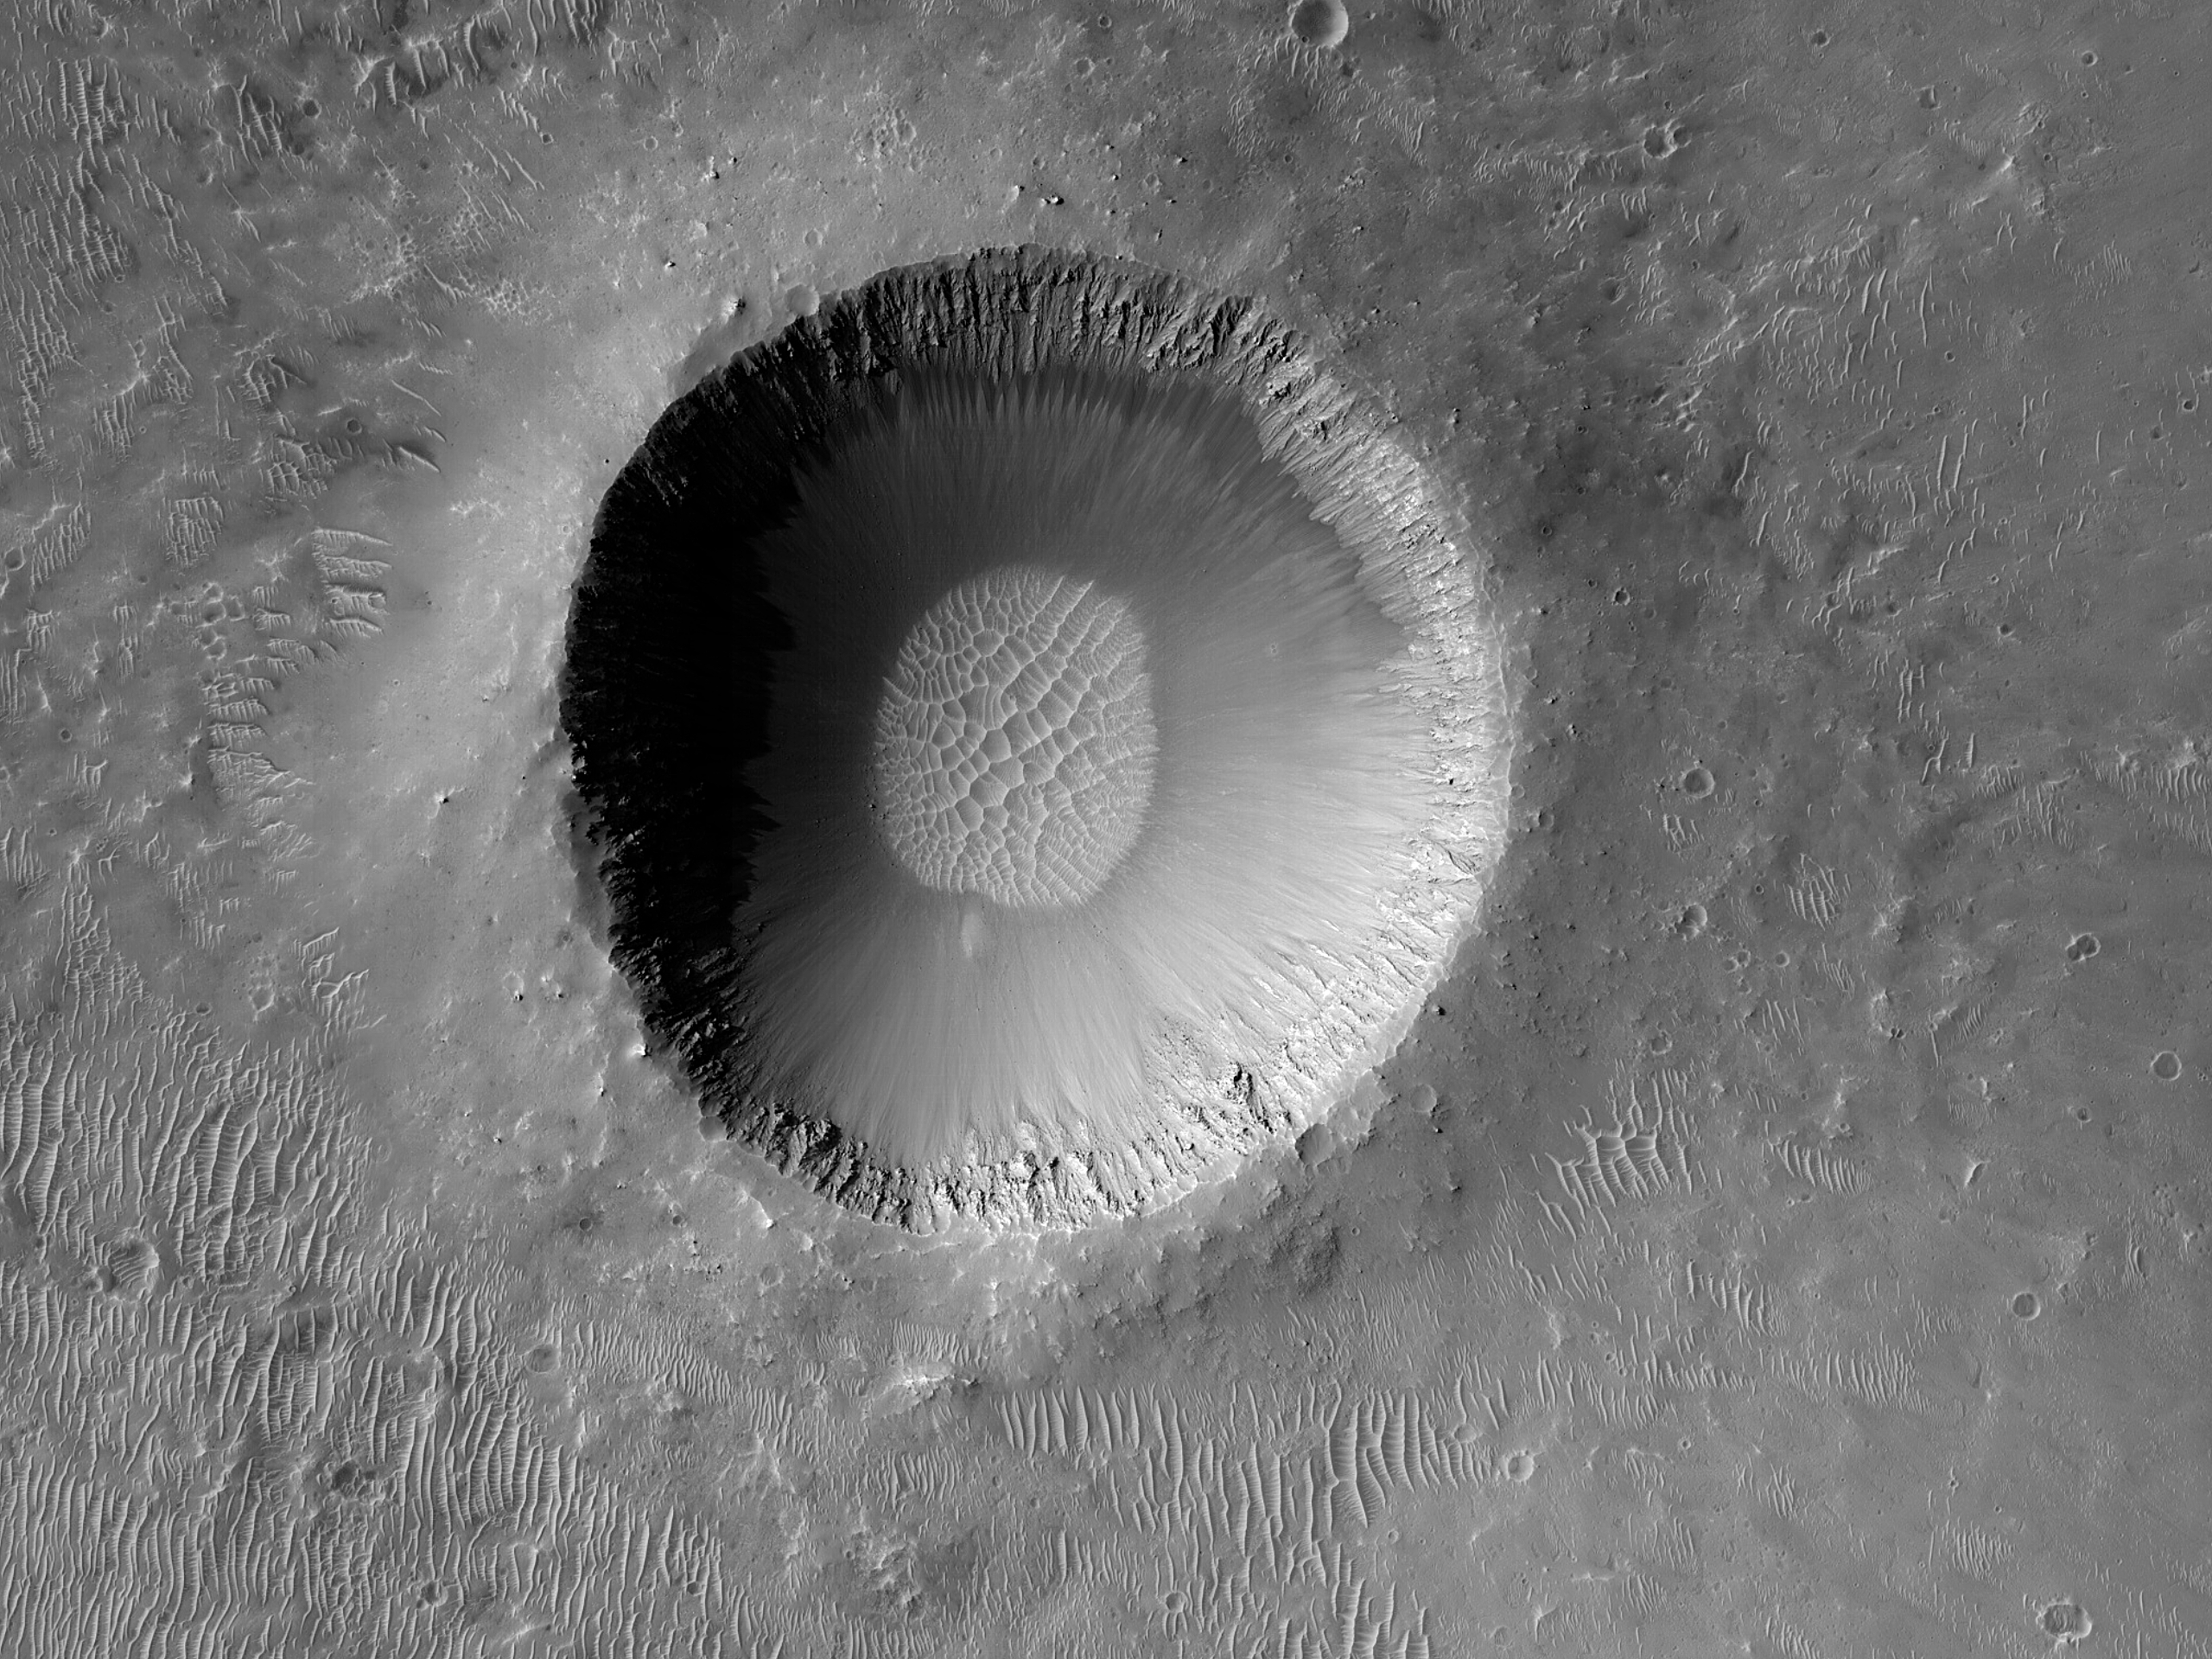 A Crater with Steep Slopes